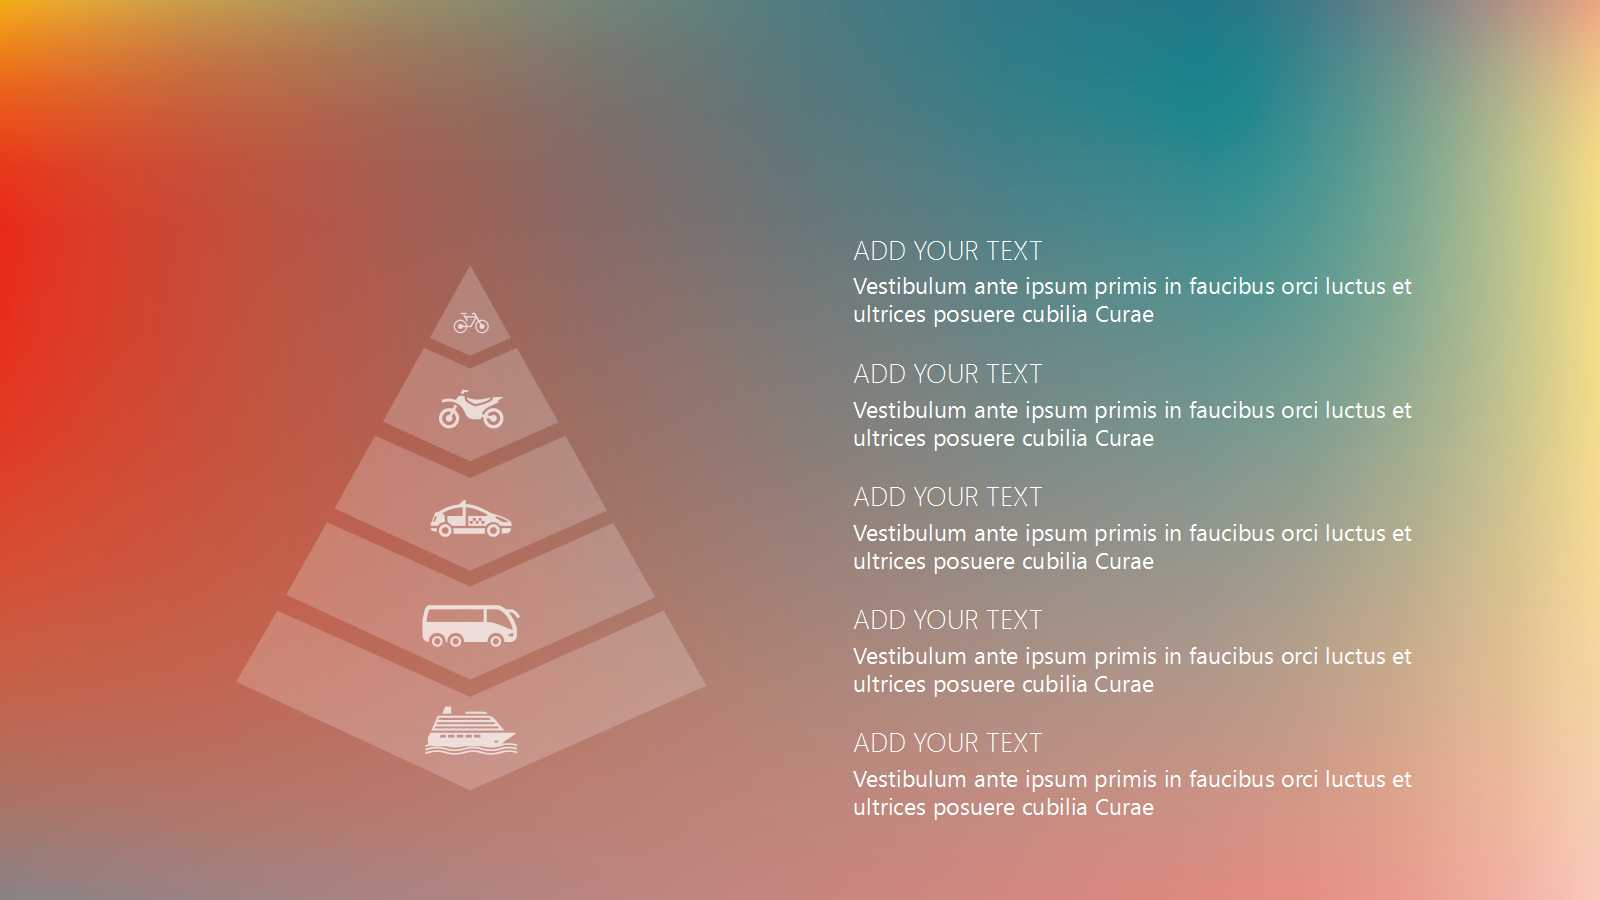 IOS 8 frosted glass style business general PPT tem pptx